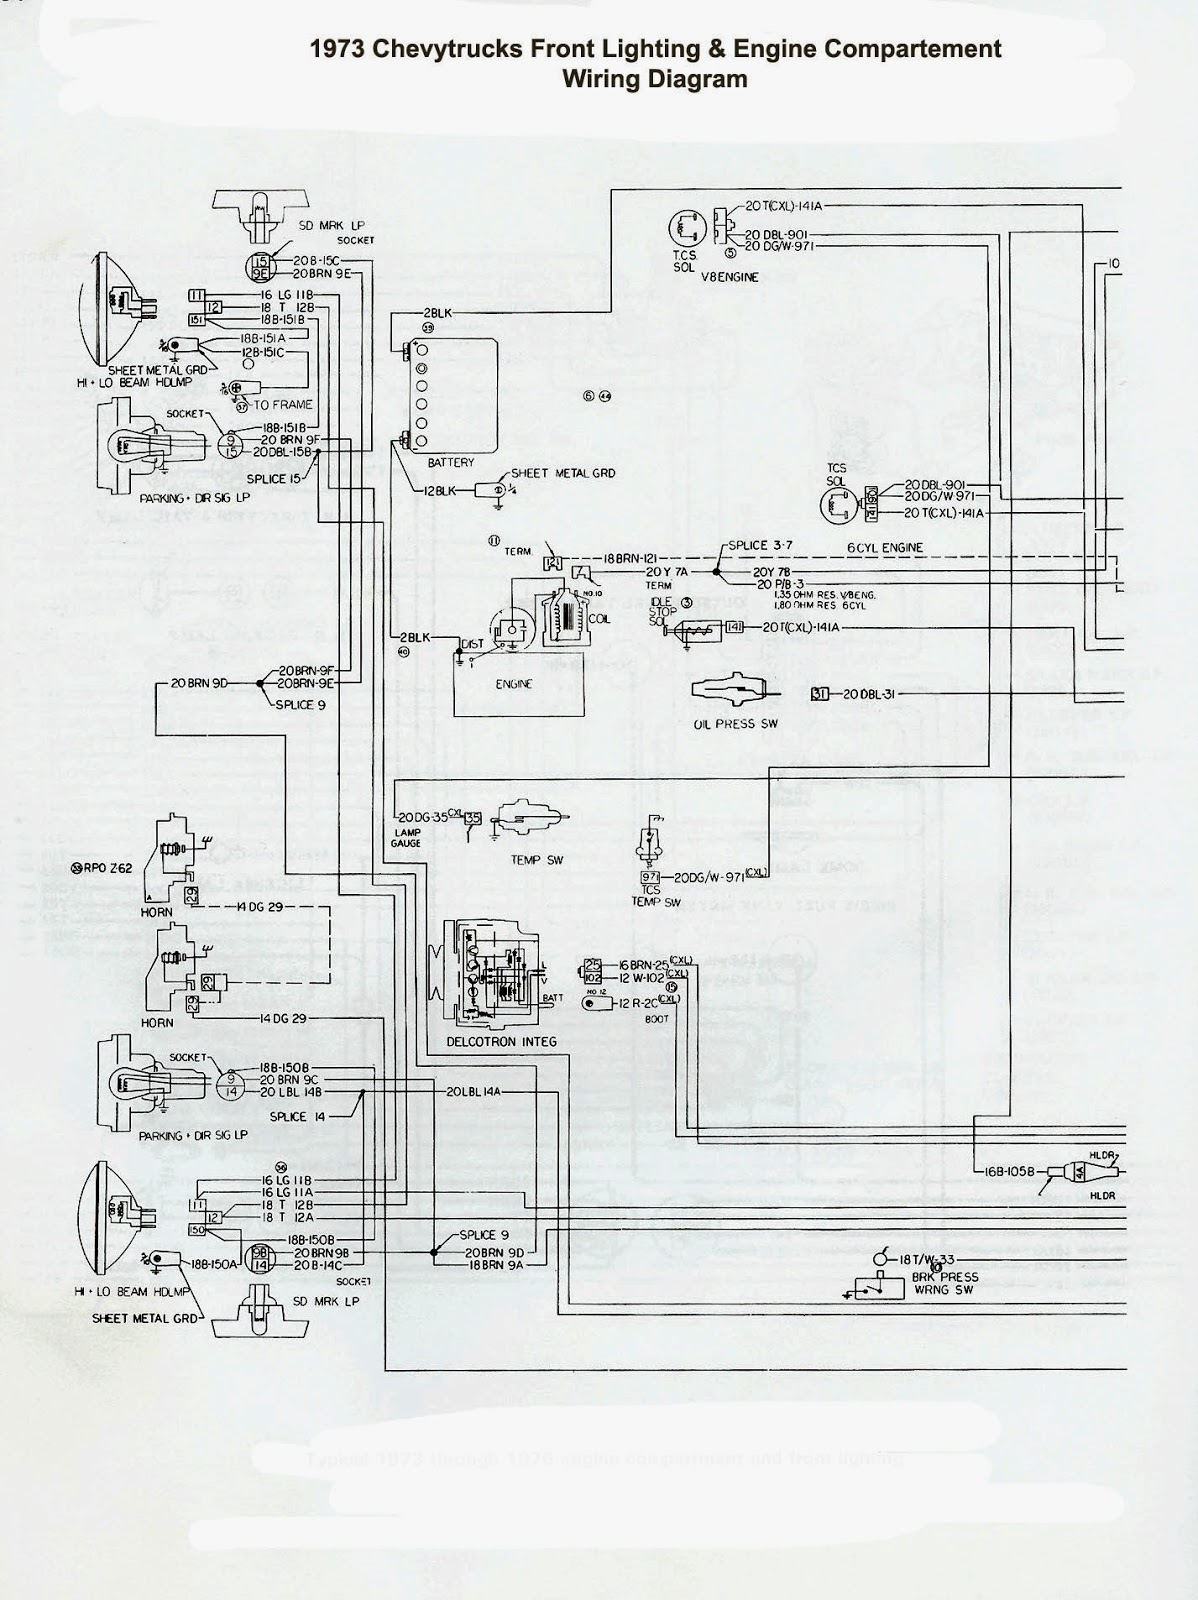 77 Chevy K20 Wiring Harness 27 Diagram Images 76 Camaro Engine N Frontlight73 Eng Frt Light Copy 78 Truck